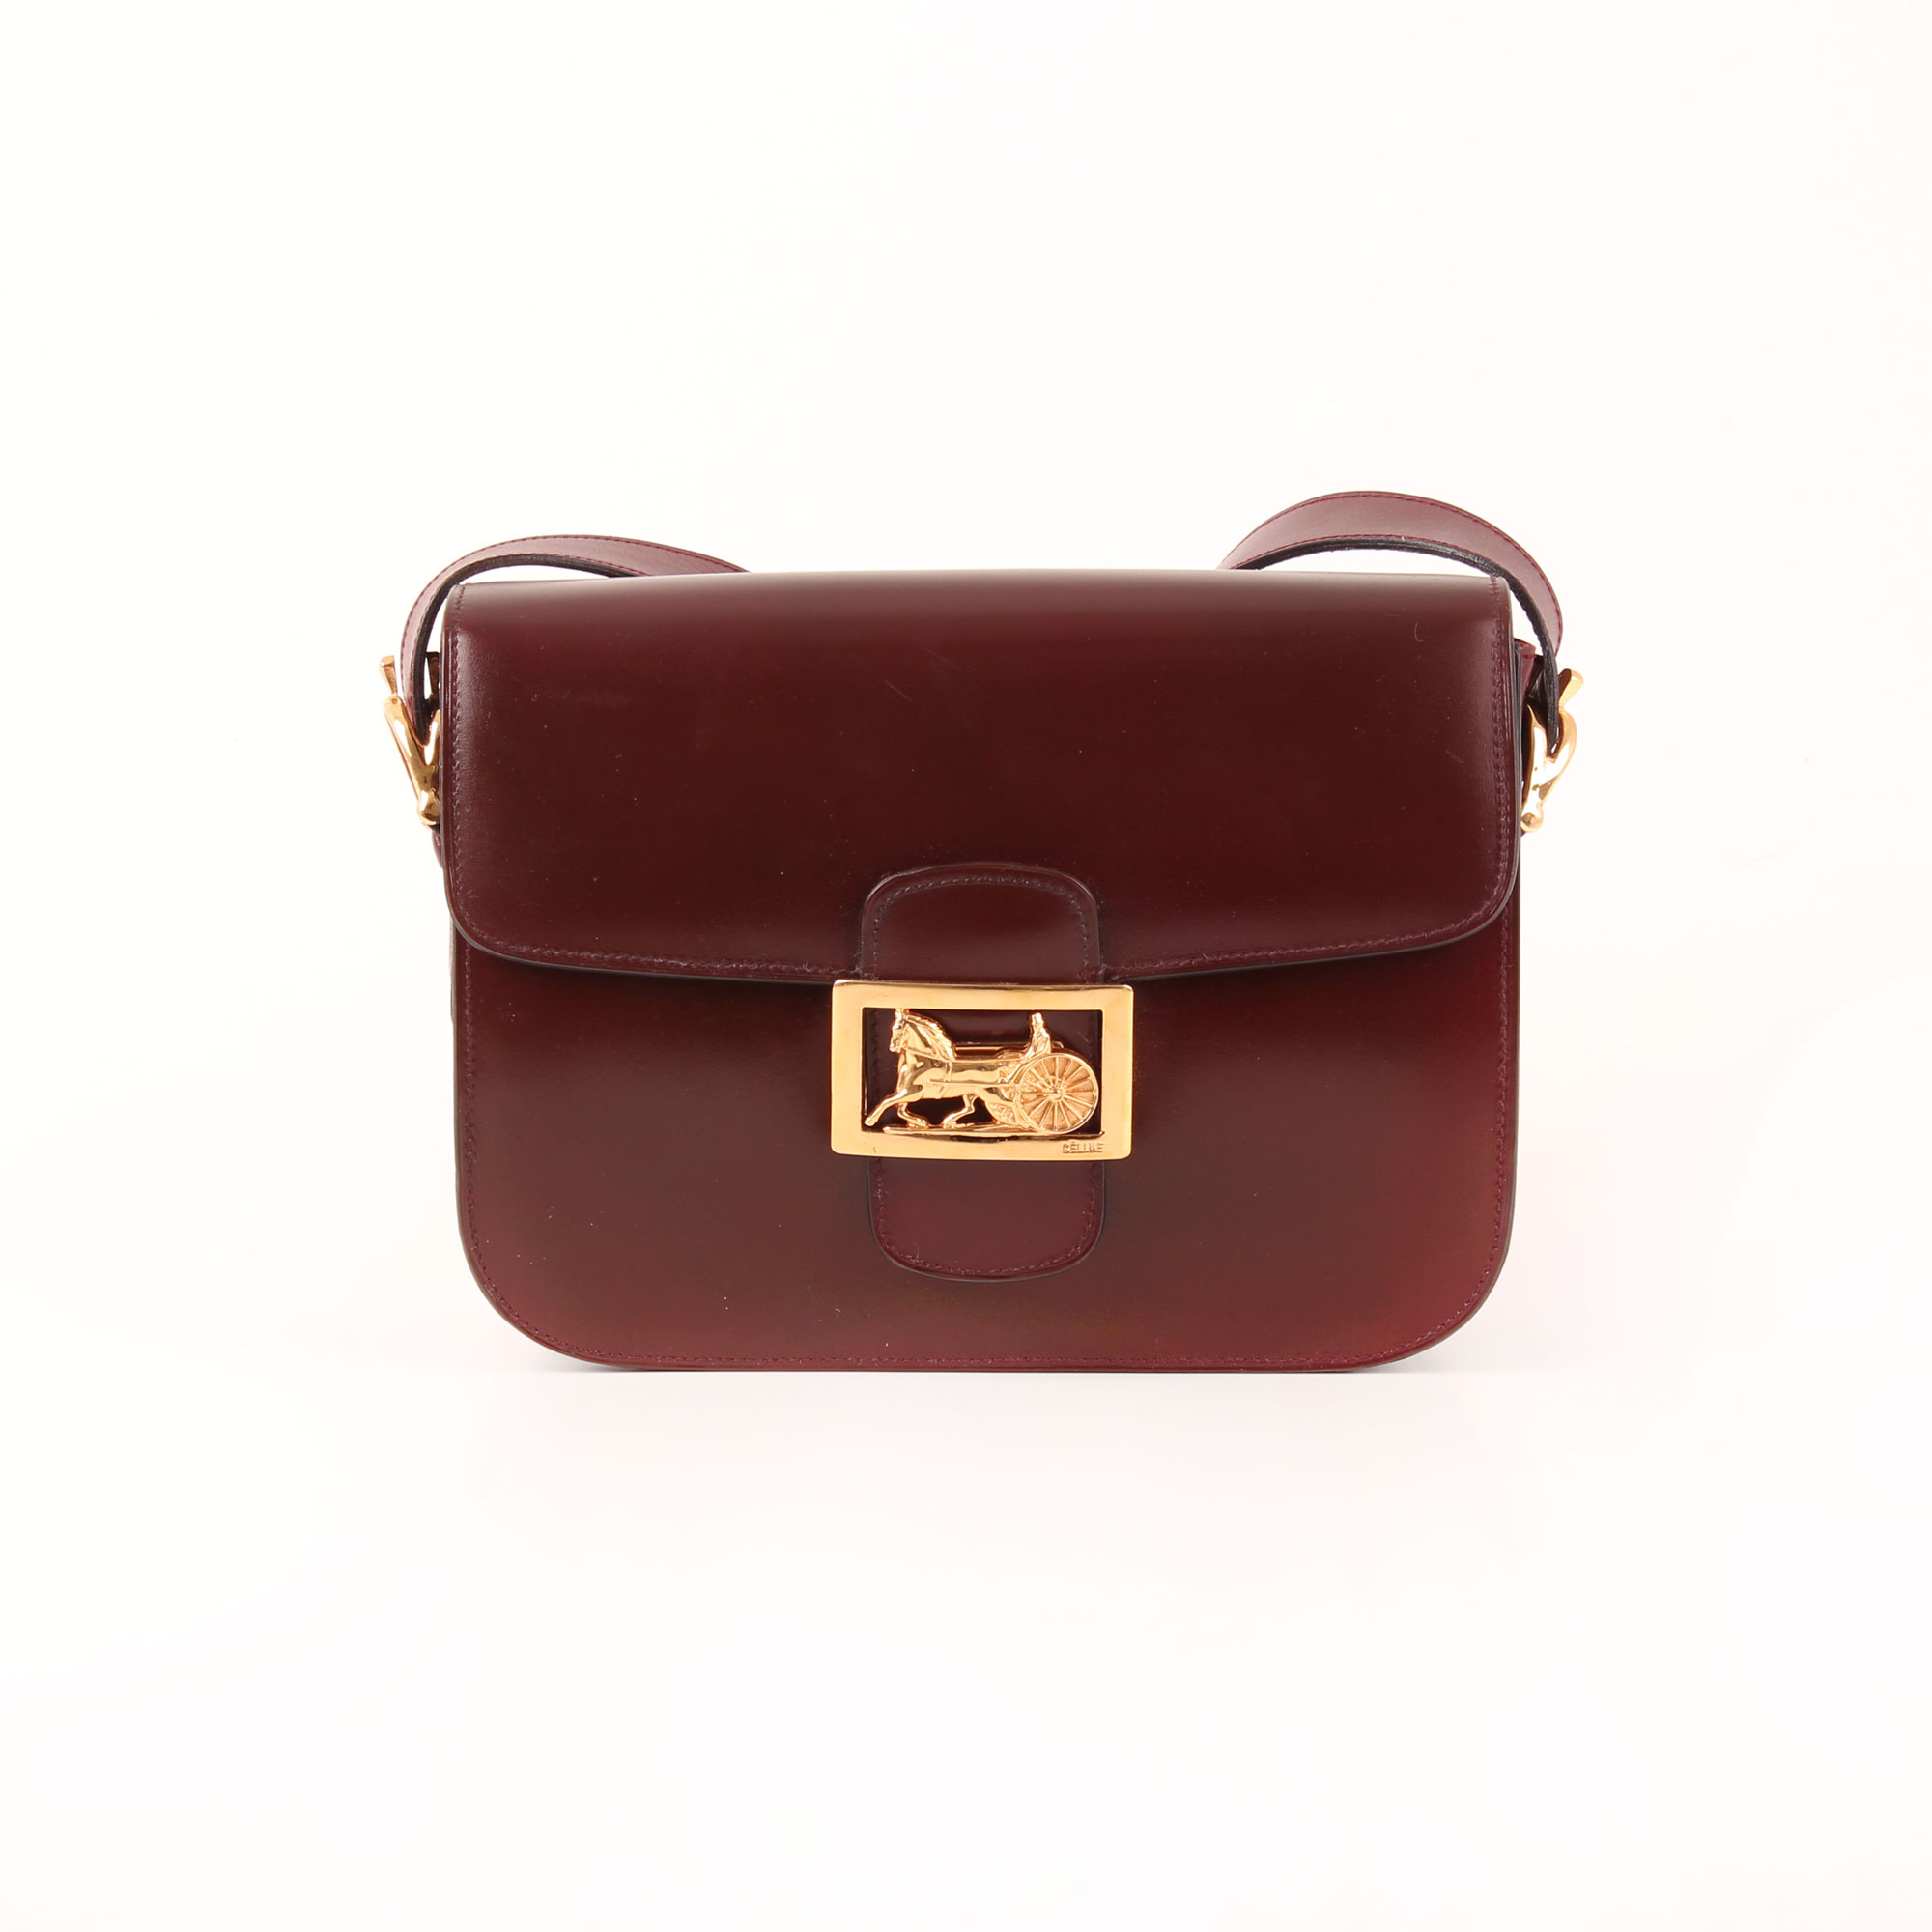 104835a938 Front image of céline vintage box bag calèche burgundy gold hardware